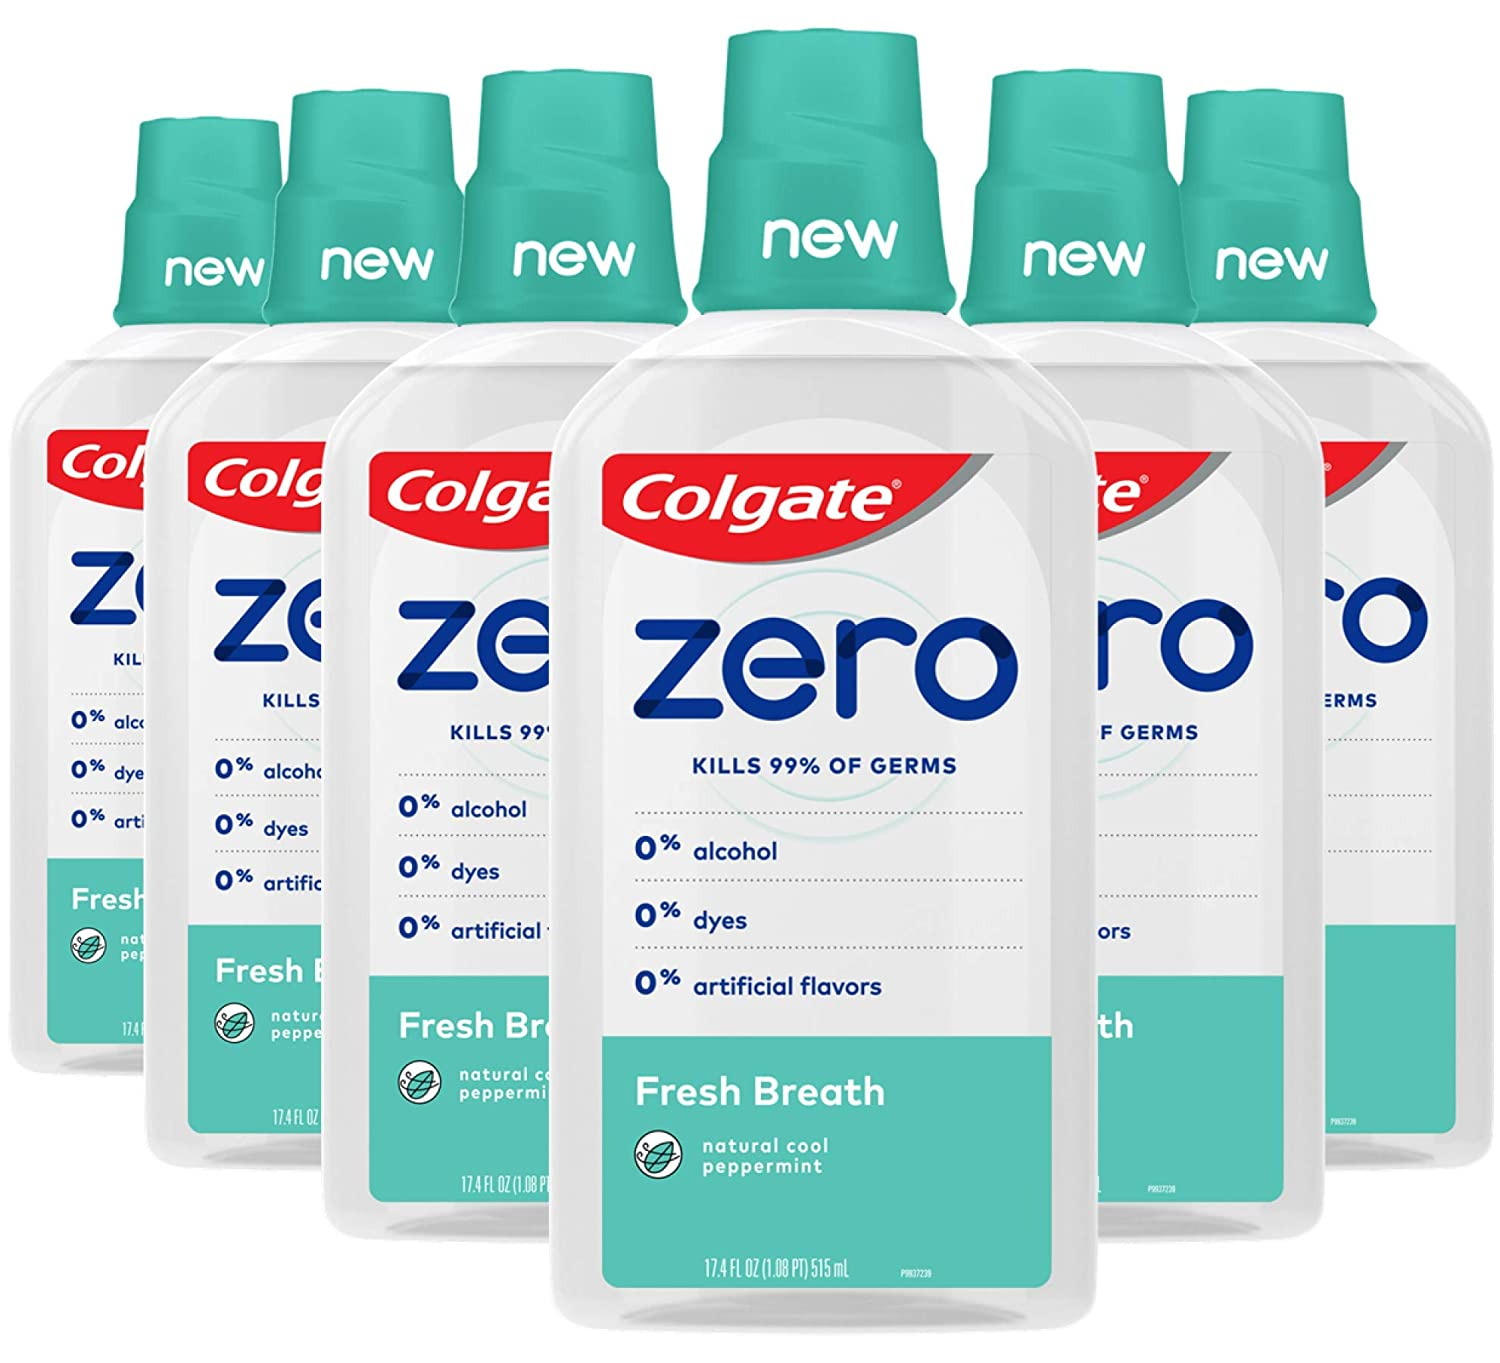 Colgate Zero for Fresh Breath Alcohol Free Mouthwash, Natural Cool Peppermint - 515 mL, 17.4 fluid ounce (6 Pack)